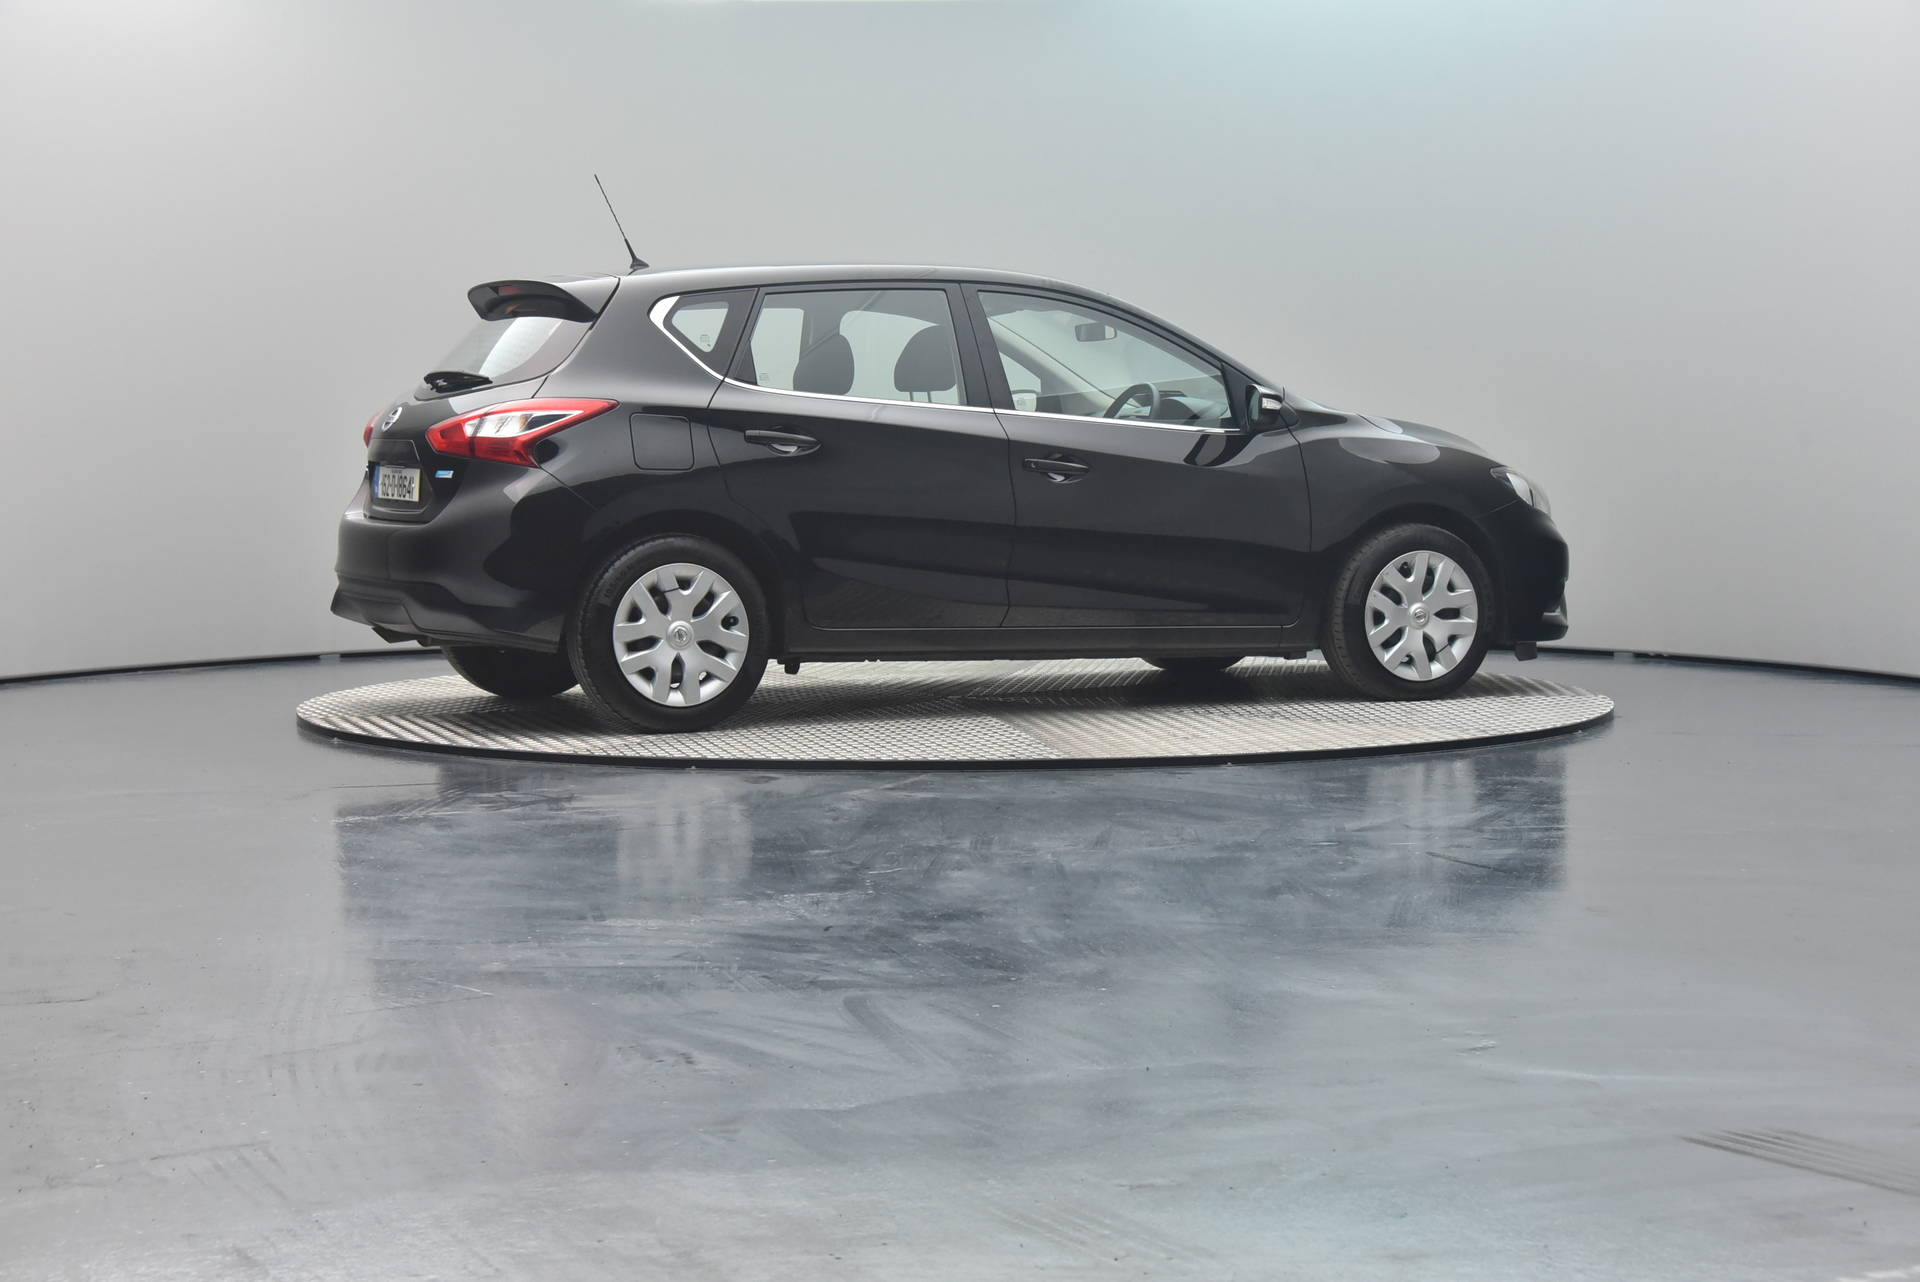 Nissan Pulsar 1.5 Dci Xe, 360-image29